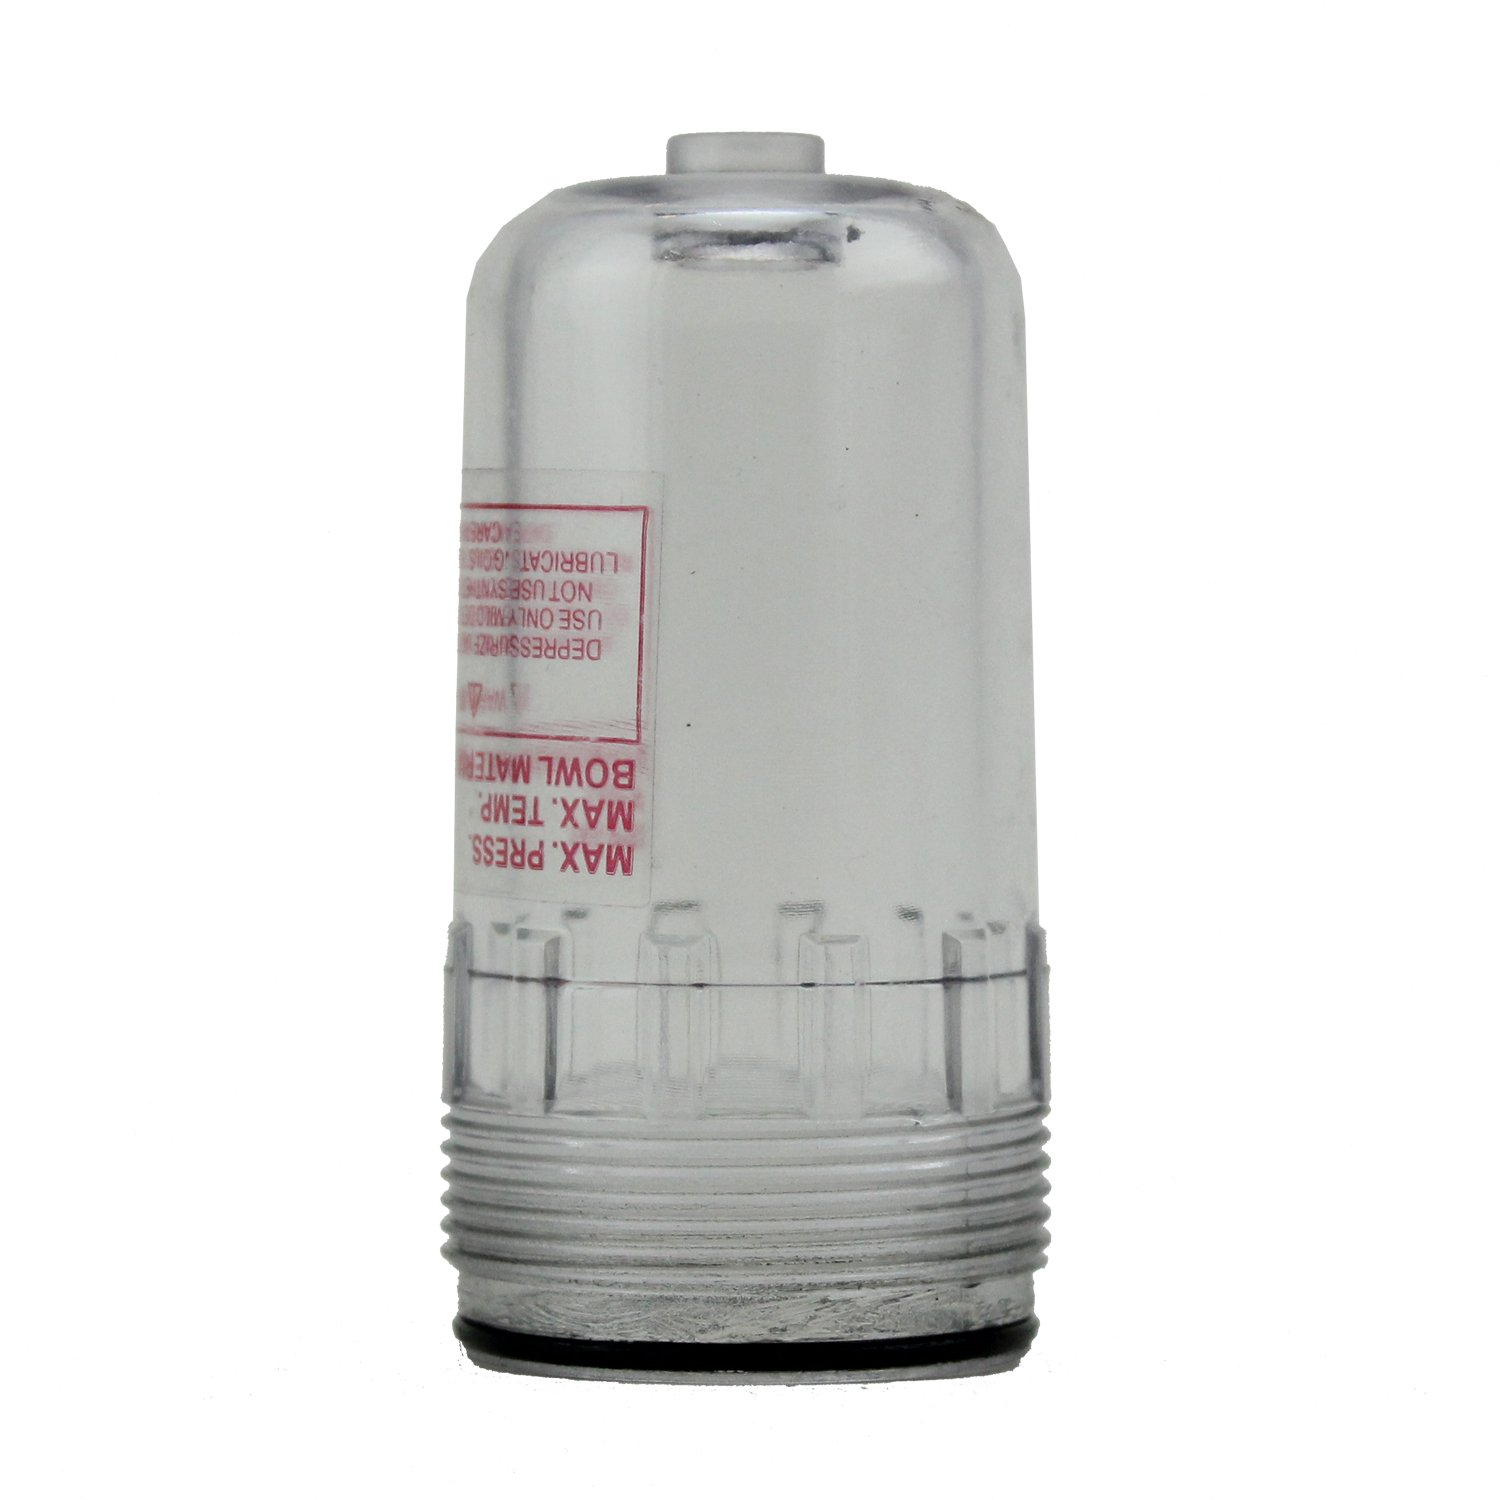 ExelAir EX25RLB-P Mini Polycarbonate Replacement FRL Lubricator Bowl